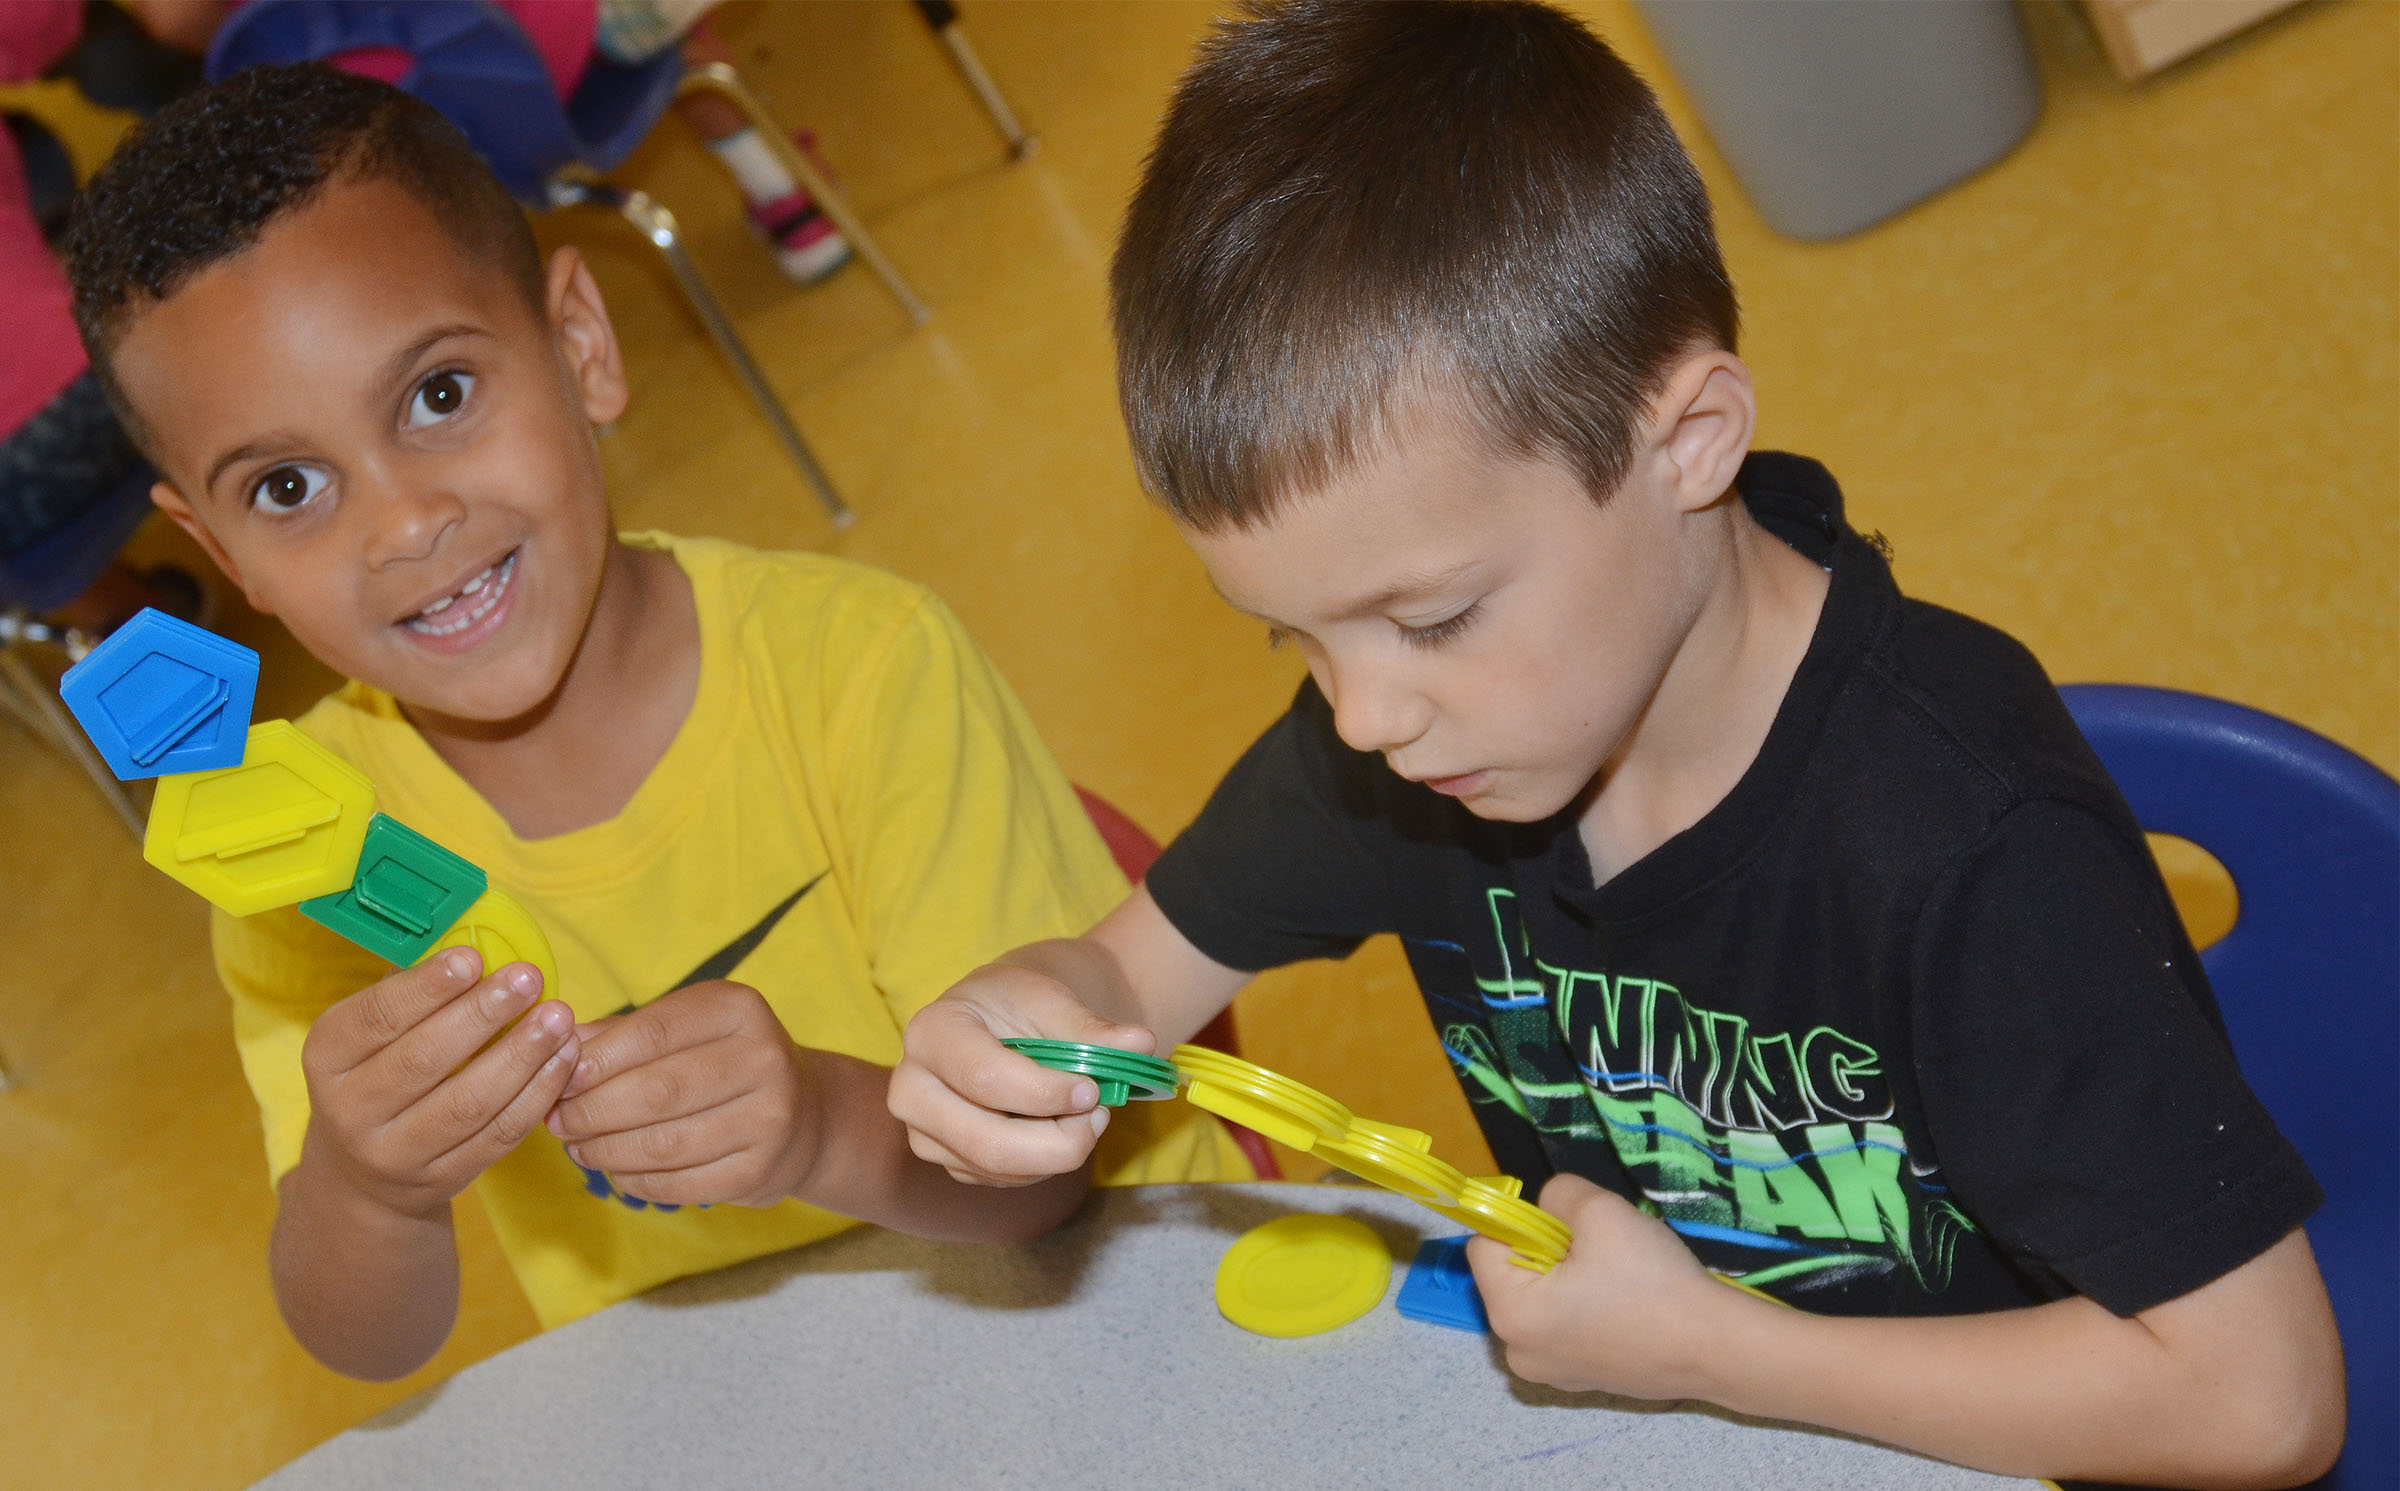 CES preschool students Kingston Cowherd, at left, and Levi Ritchie build together.